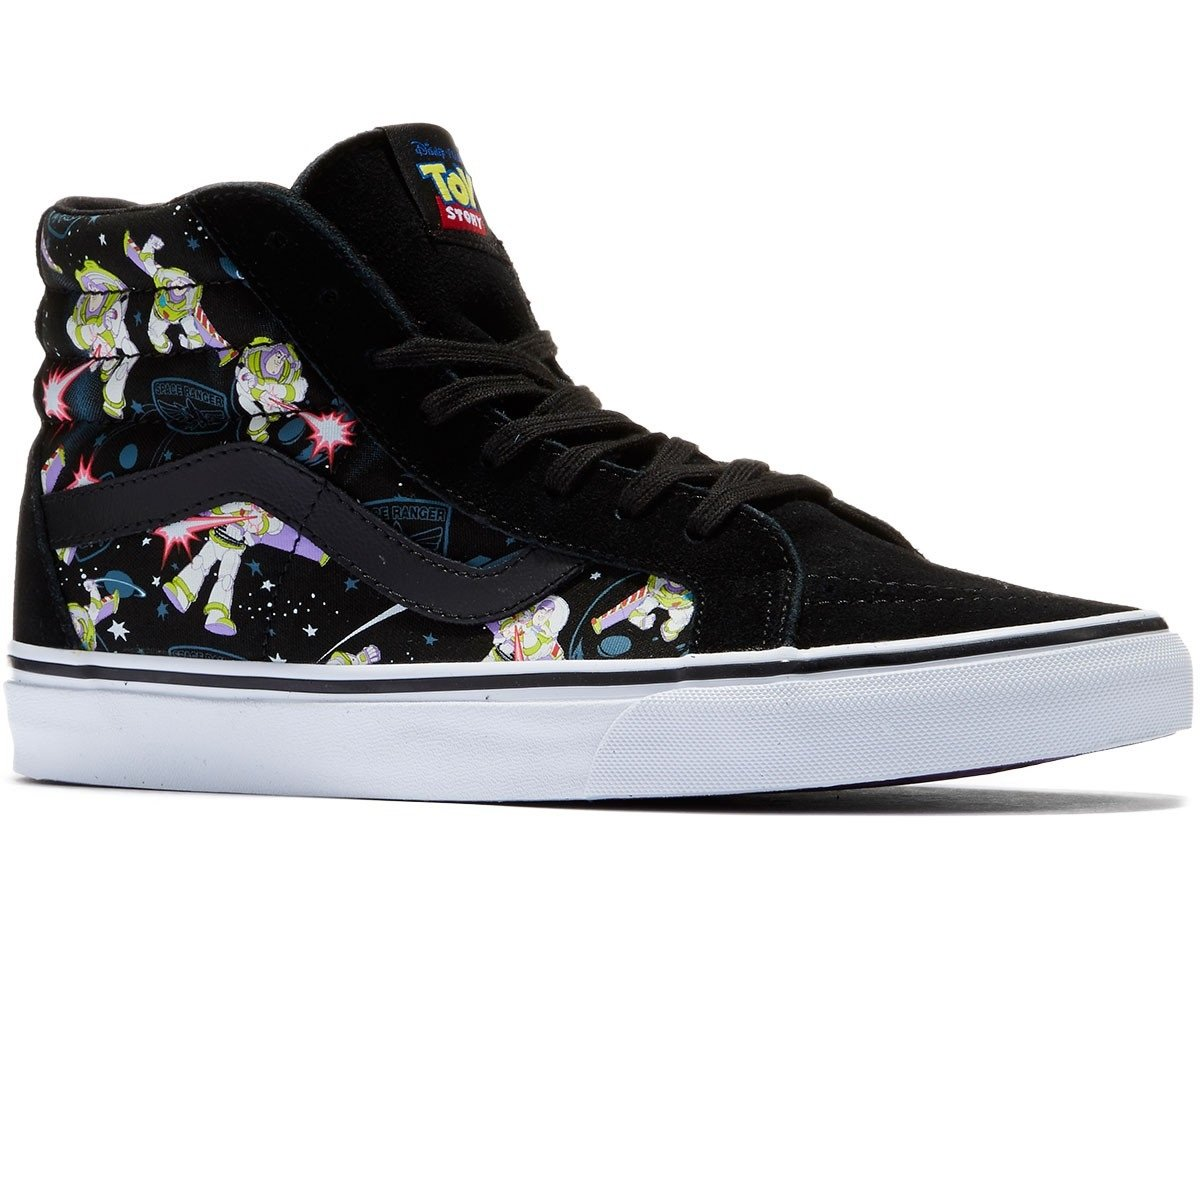 Galleon - Vans Shoes Sk8-Hi Reissue Buzz Lightyear Disney Pixar Toy Story  Sneakers (3.5 Men s 5 Women s) 6fd20eeb4bc